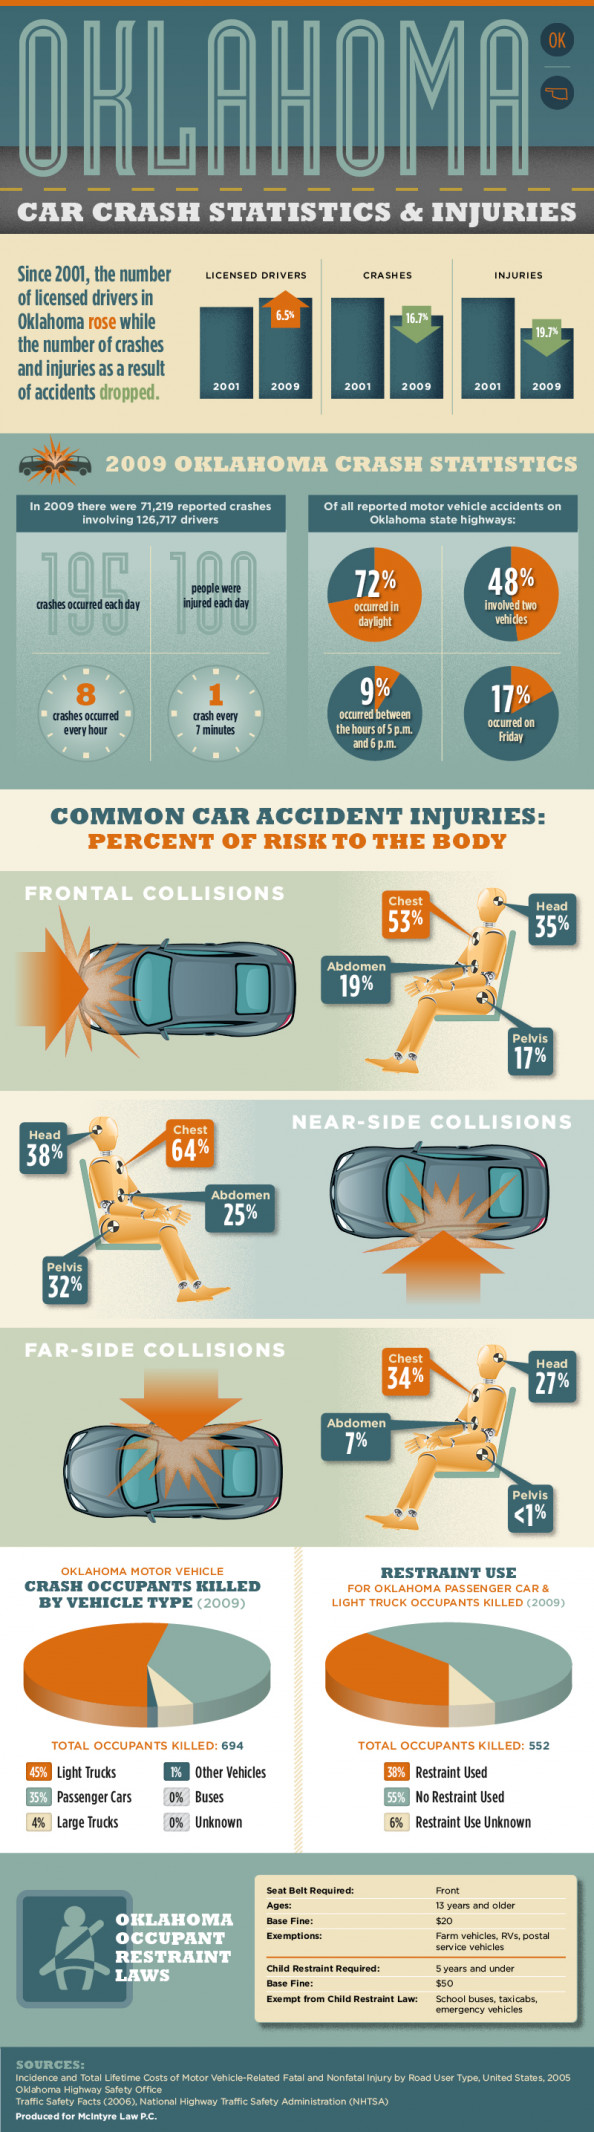 Oklahoma Car Crash Statistics and Injuries Infographic